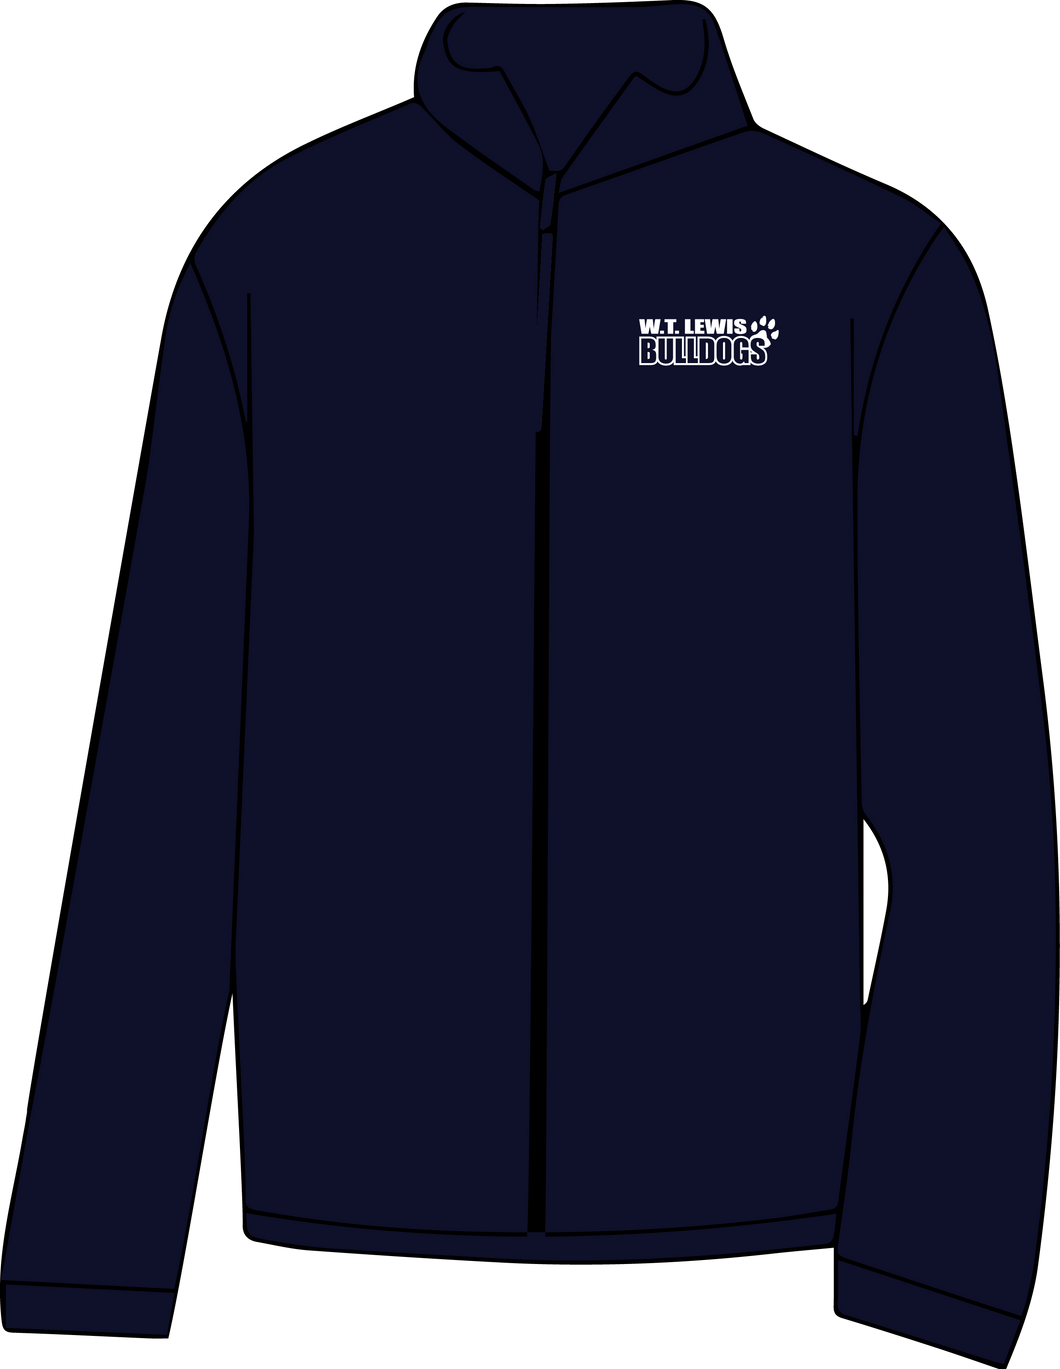 W.T. LEWIS ELEMENTARY EMBROIDERED FLEECE JACKET ***ORDERS TAKEN THROUGH NOV 3RD***PUT STUDENTS GRADE FOR TEACHER NAME